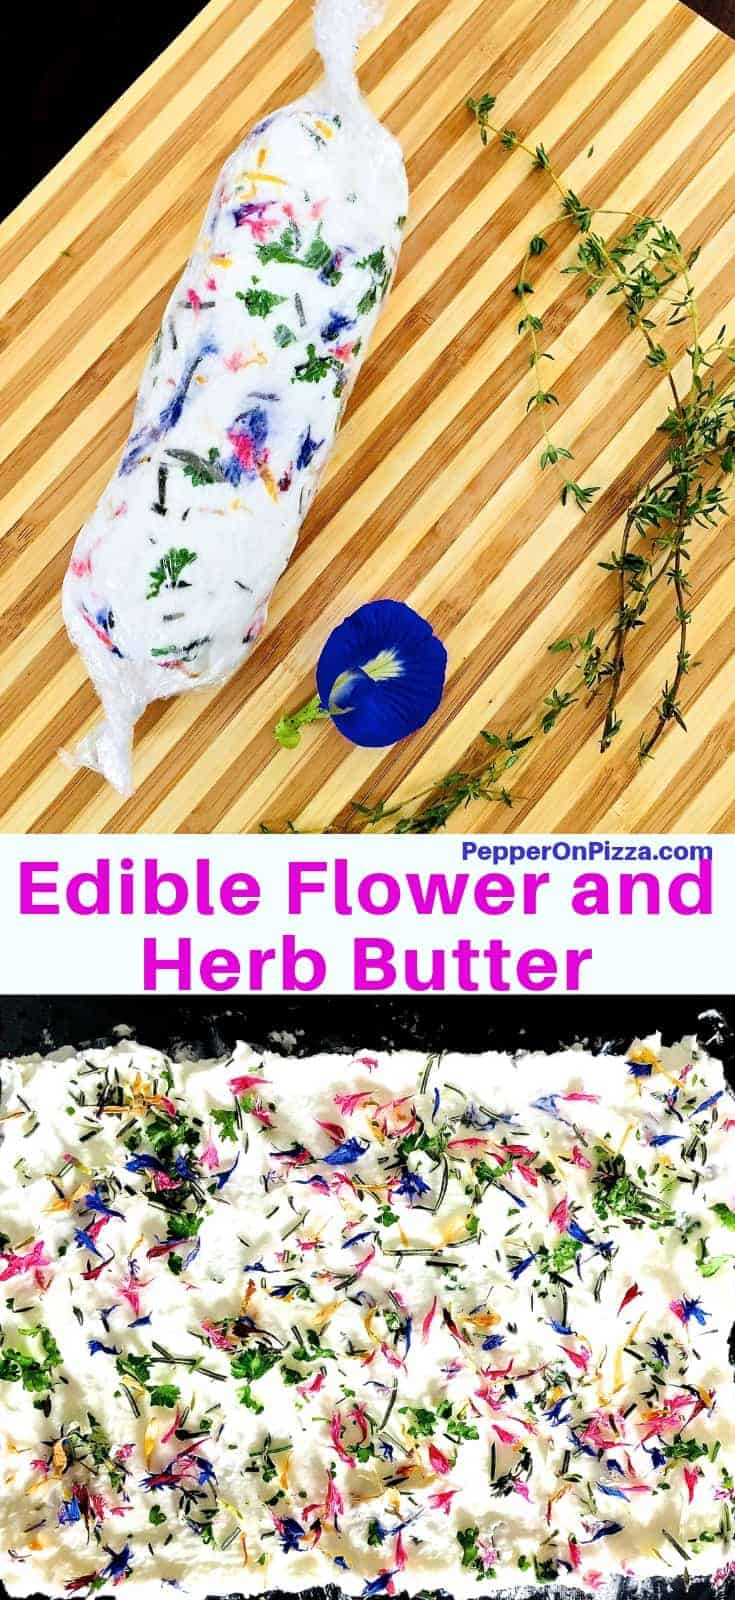 Fresh, colourful Edible flower and herb butter. Very easy to make and perfect for a festive dinner party. Use as a dip or spread, or make a butter roulade with pretty flowers and bright green herbs